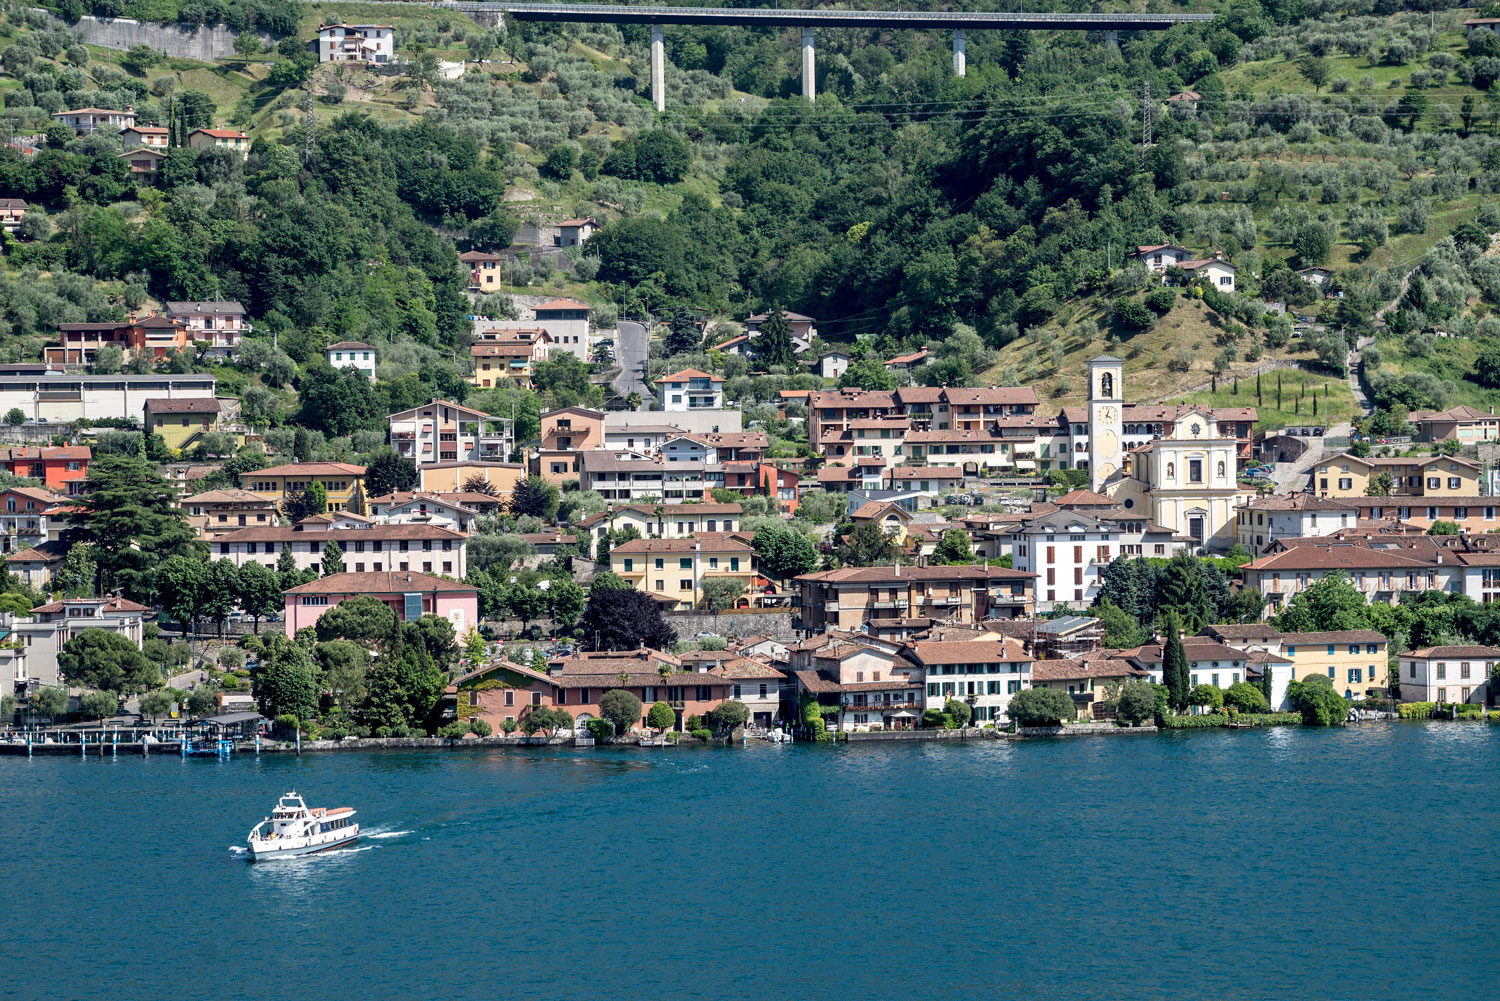 The town of Sulzano, Lake Iseo